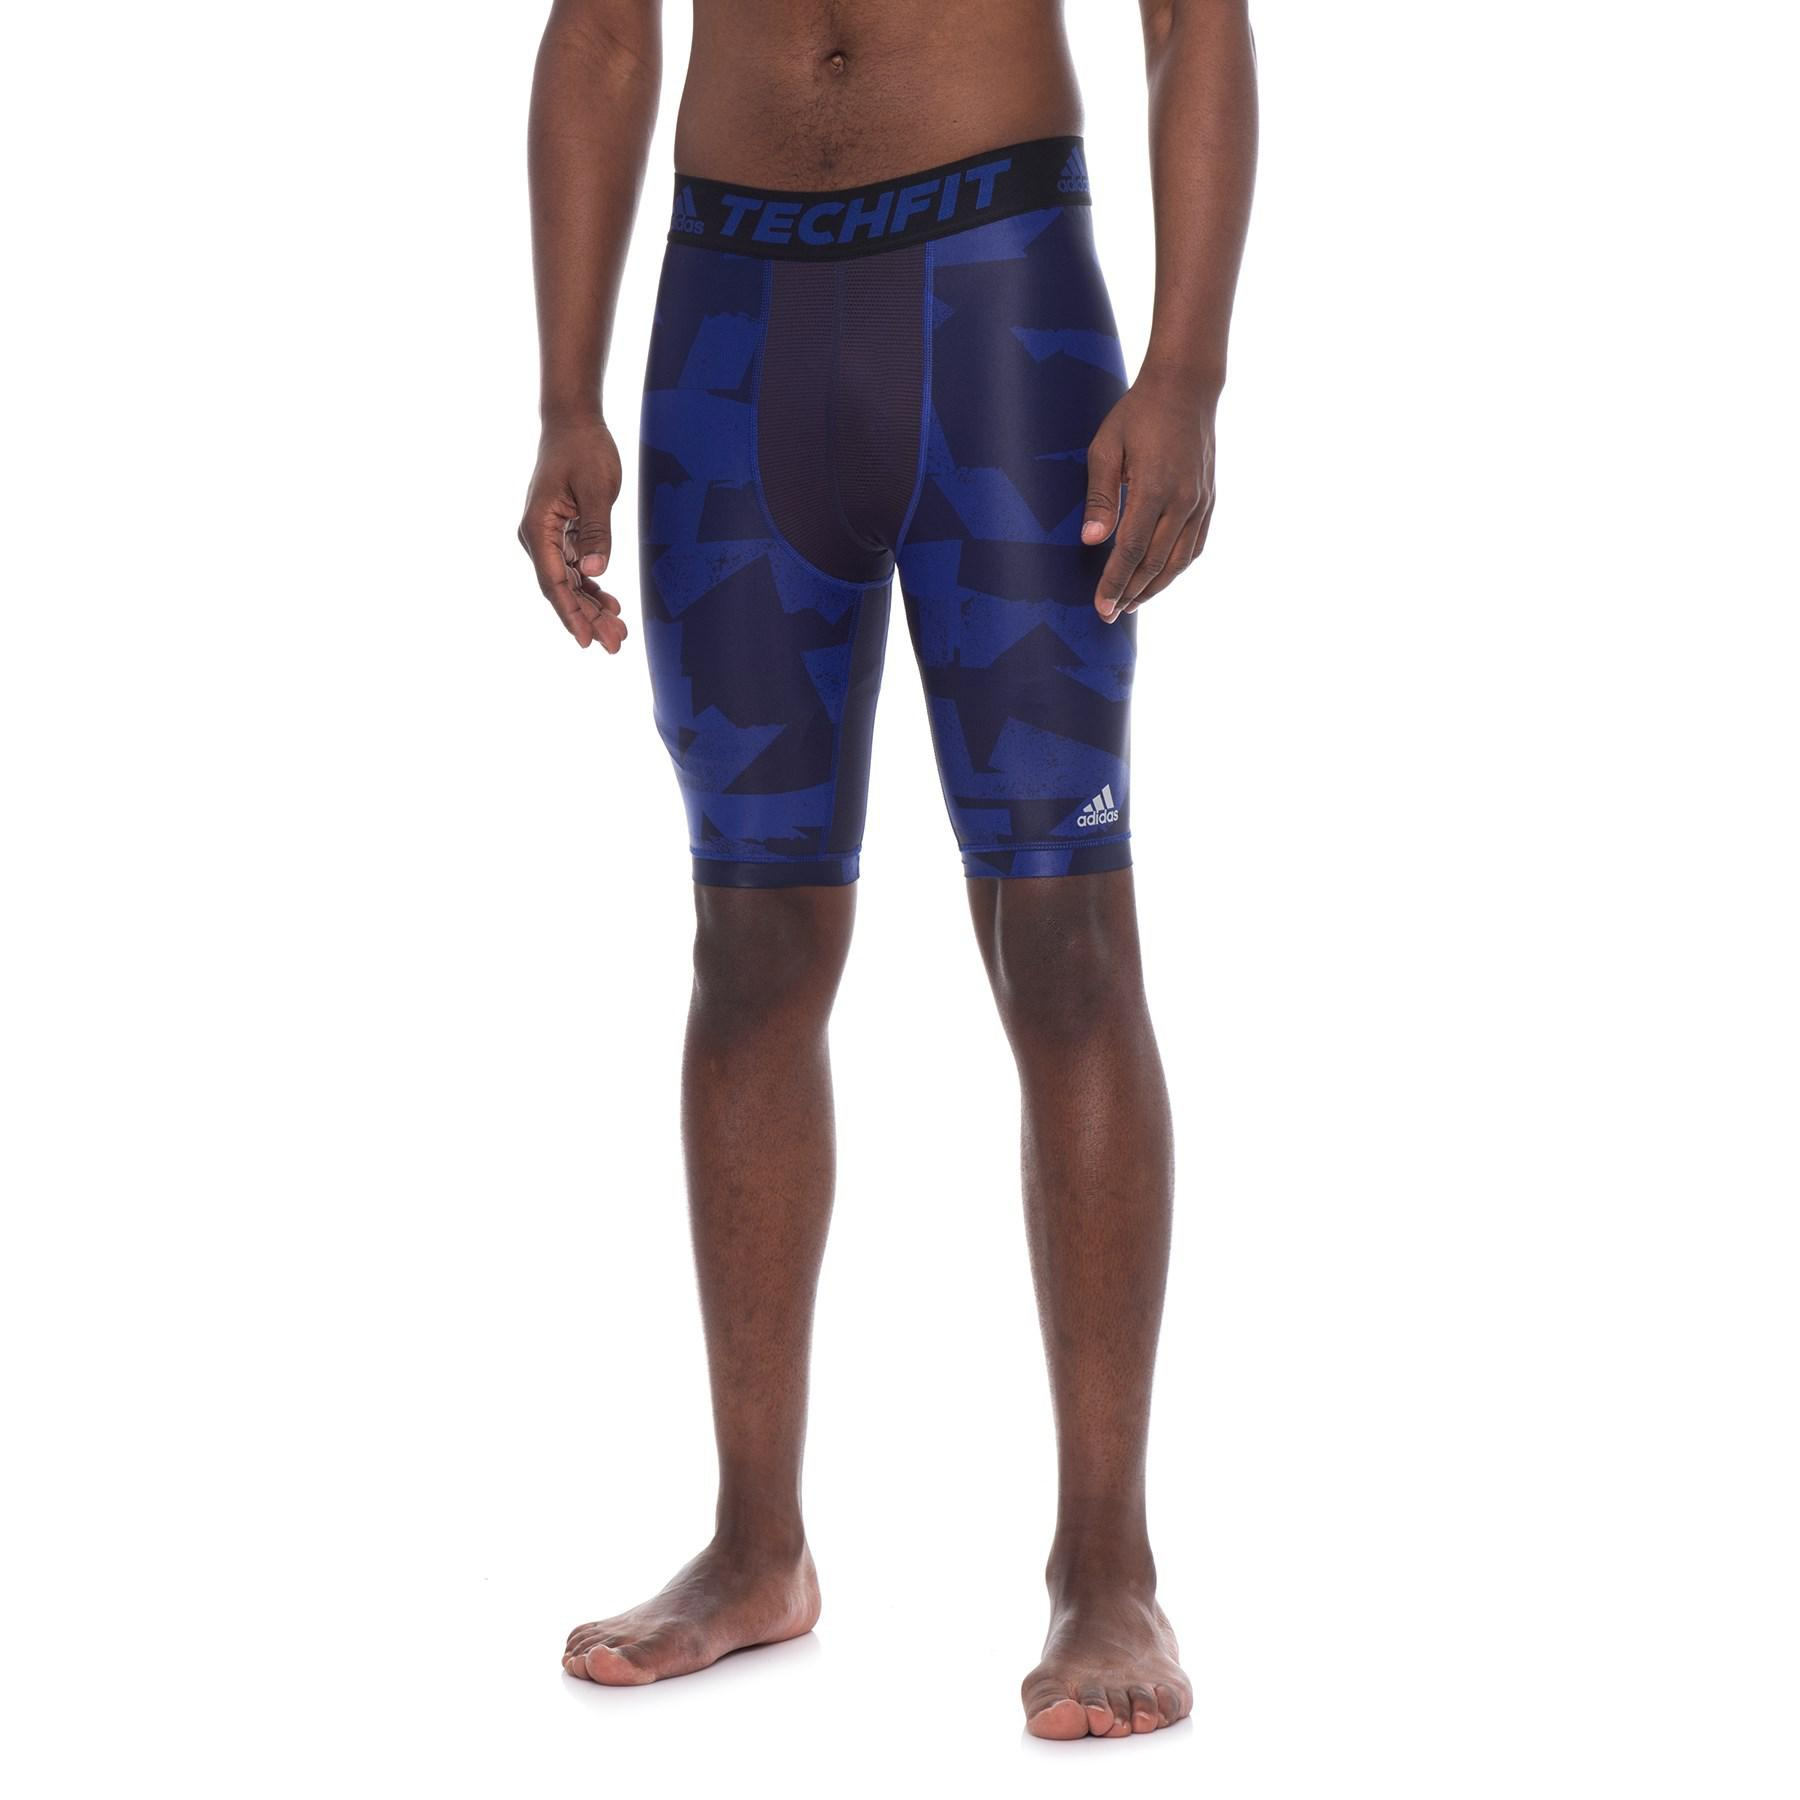 Lyst adidas Techfit Chill Training Shorts in Blue for Men